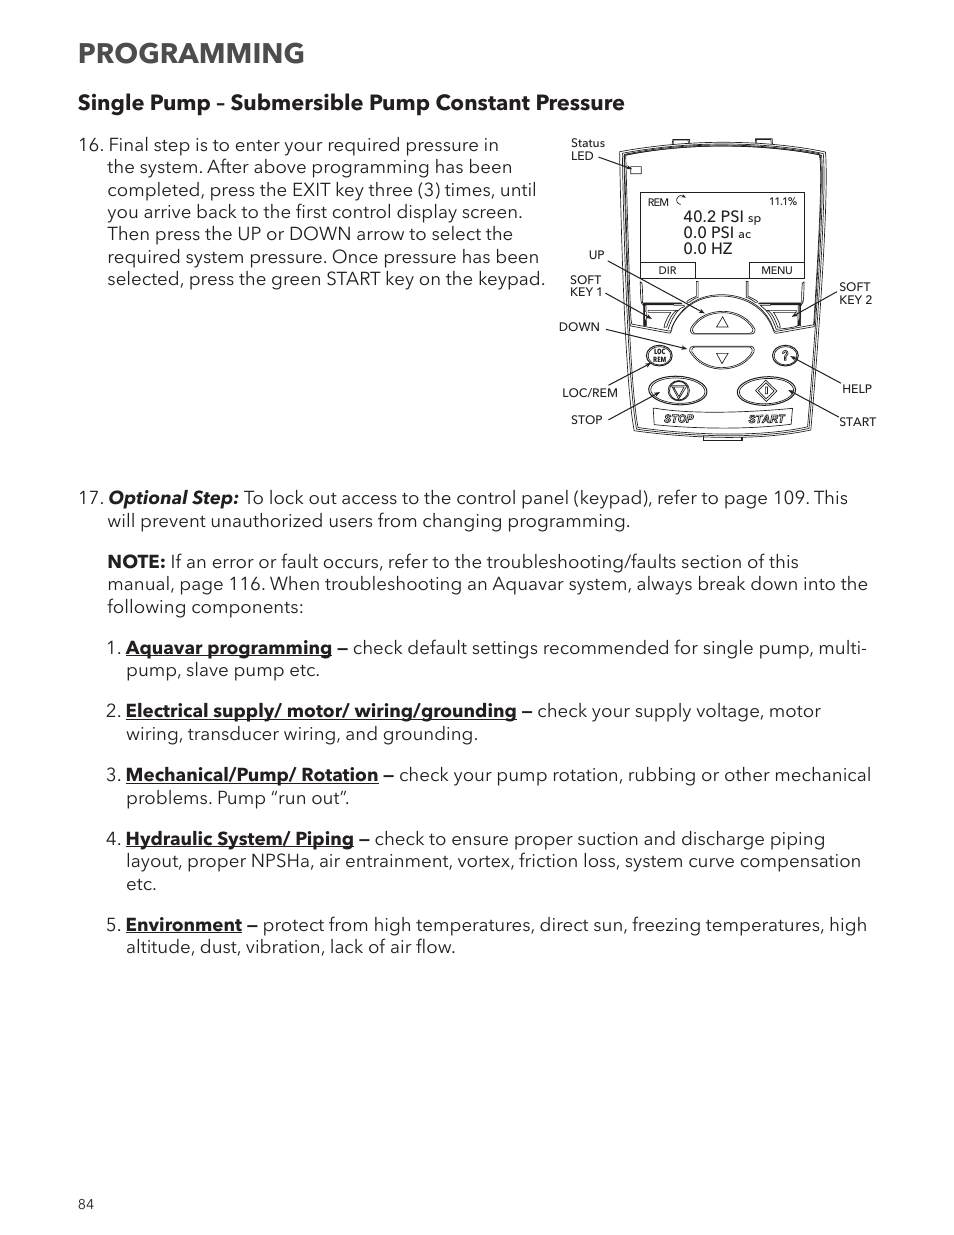 hight resolution of programming single pump submersible pump constant pressure xylem im167 r8 aquavar cpc centrifugal pump control user manual page 84 152